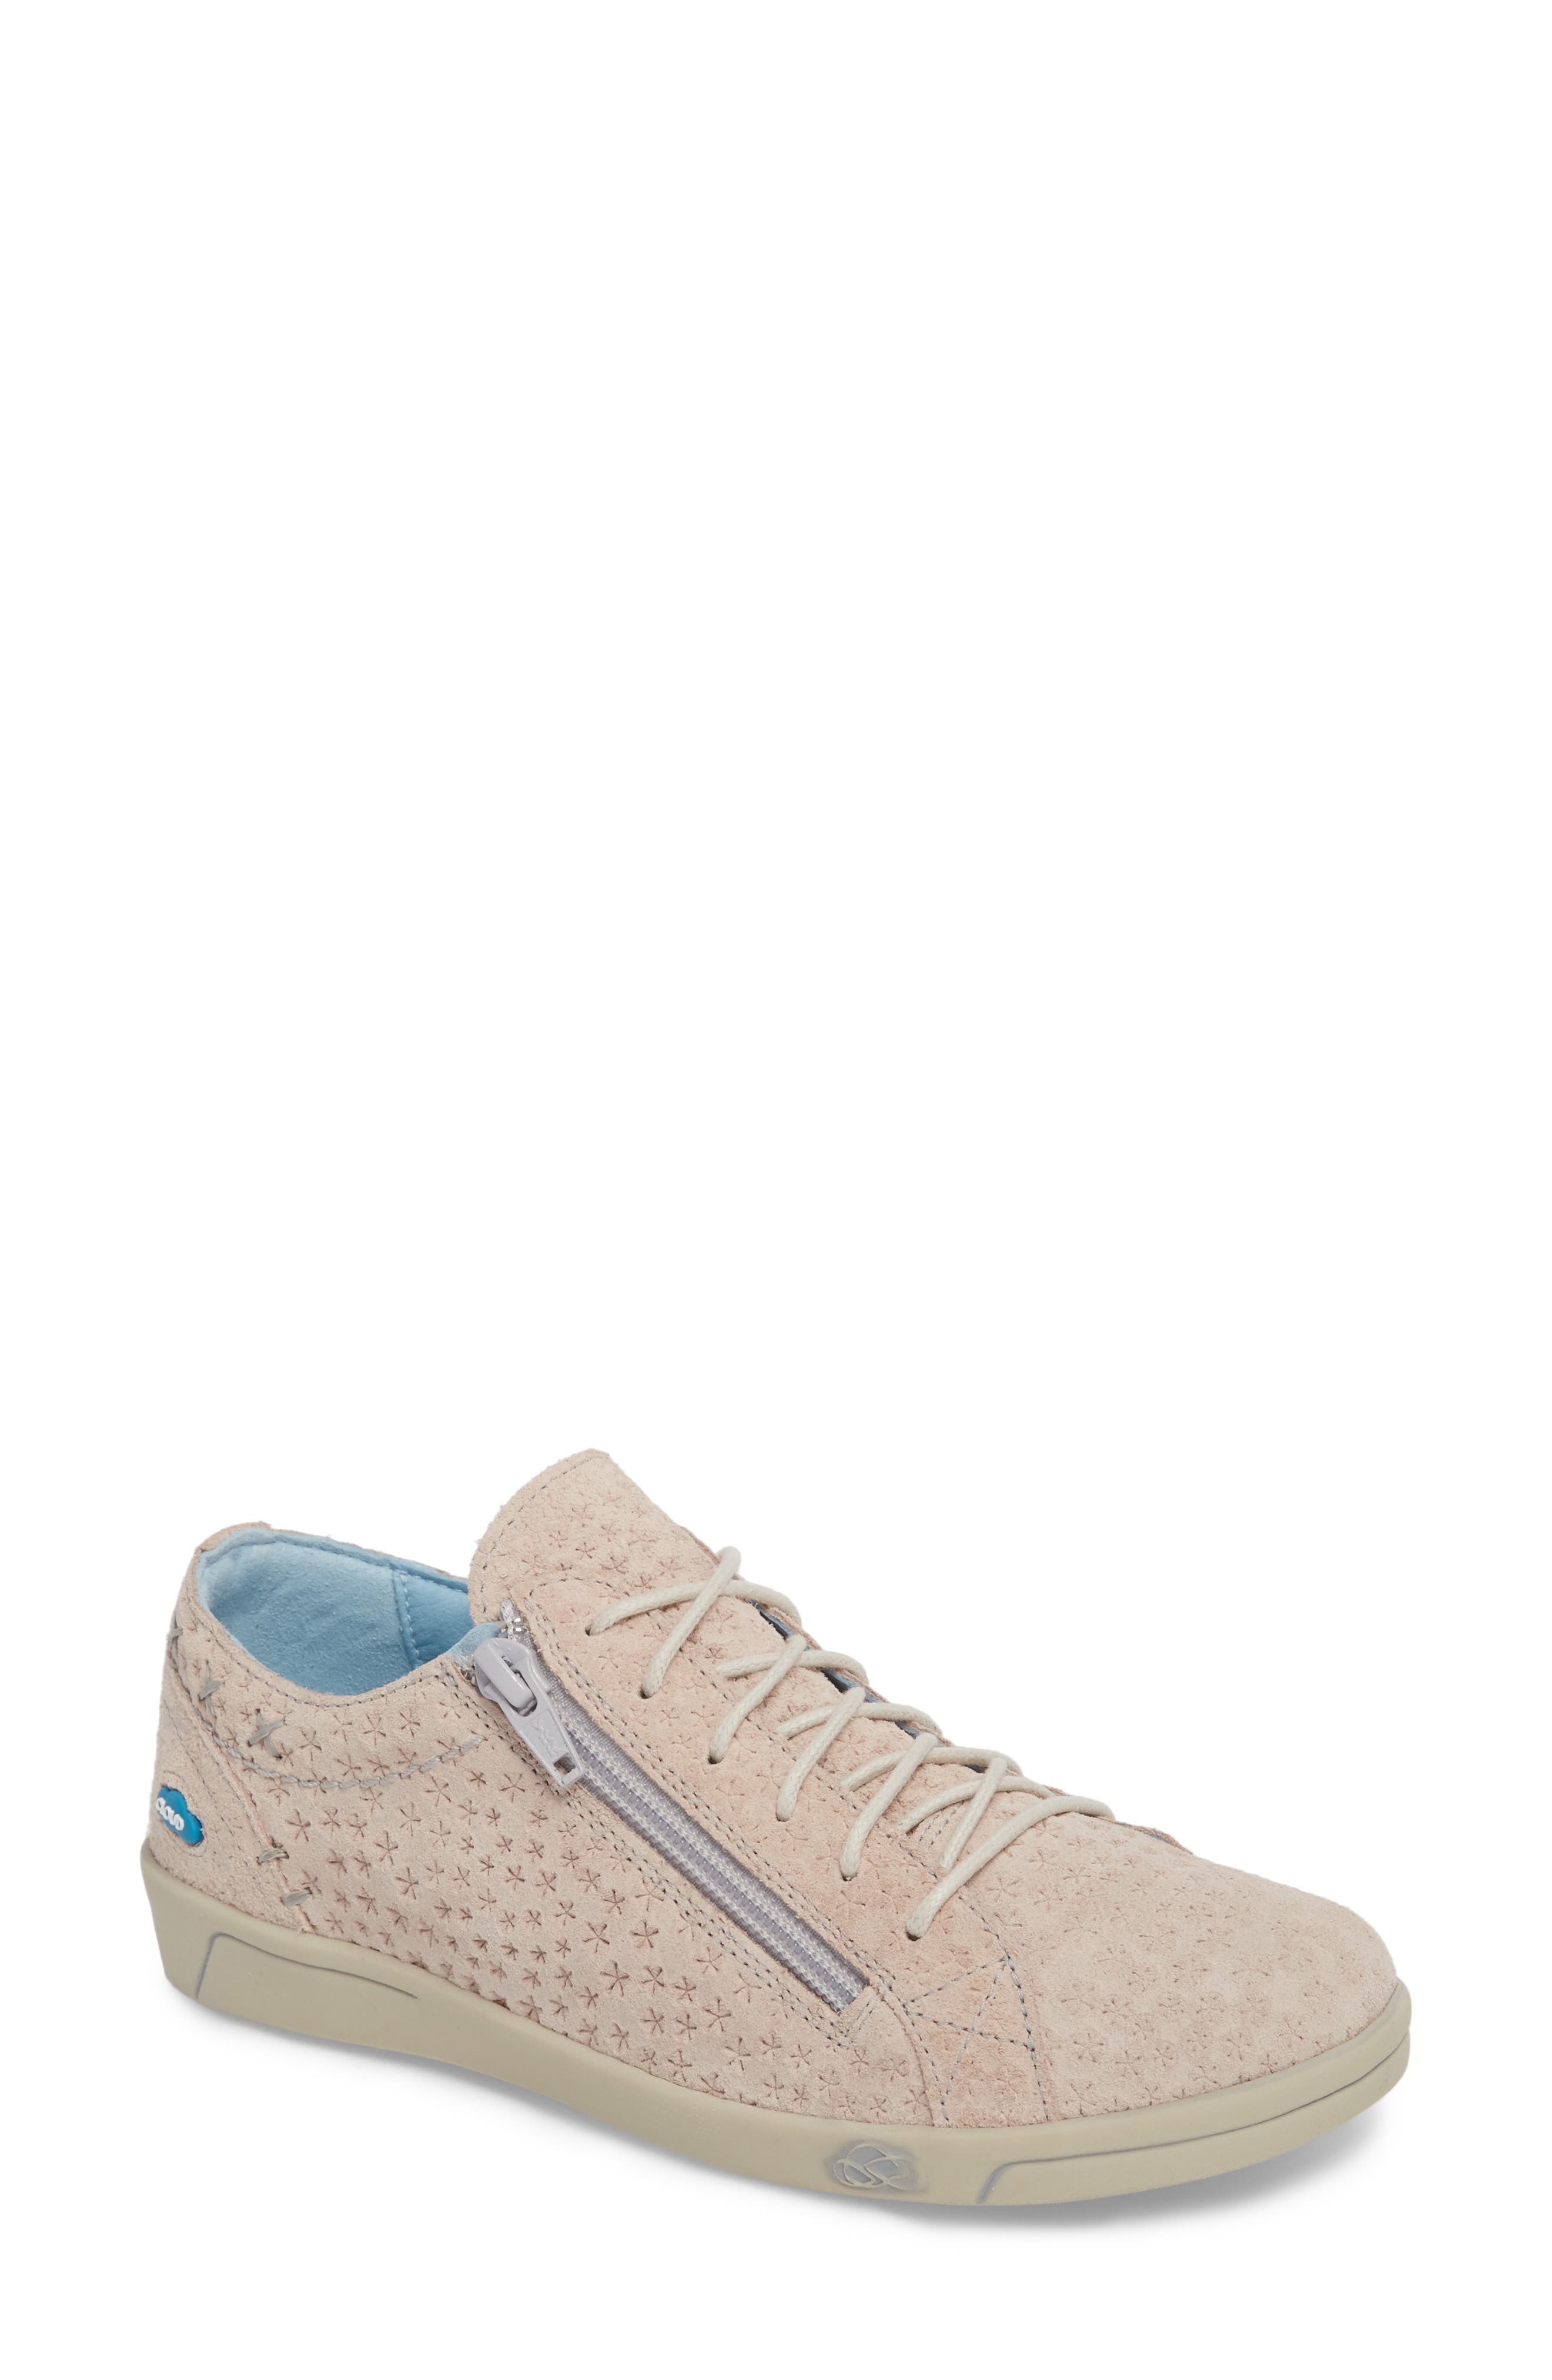 Aika Star Perforated Sneaker,                             Main thumbnail 1, color,                             Light Pink Leather